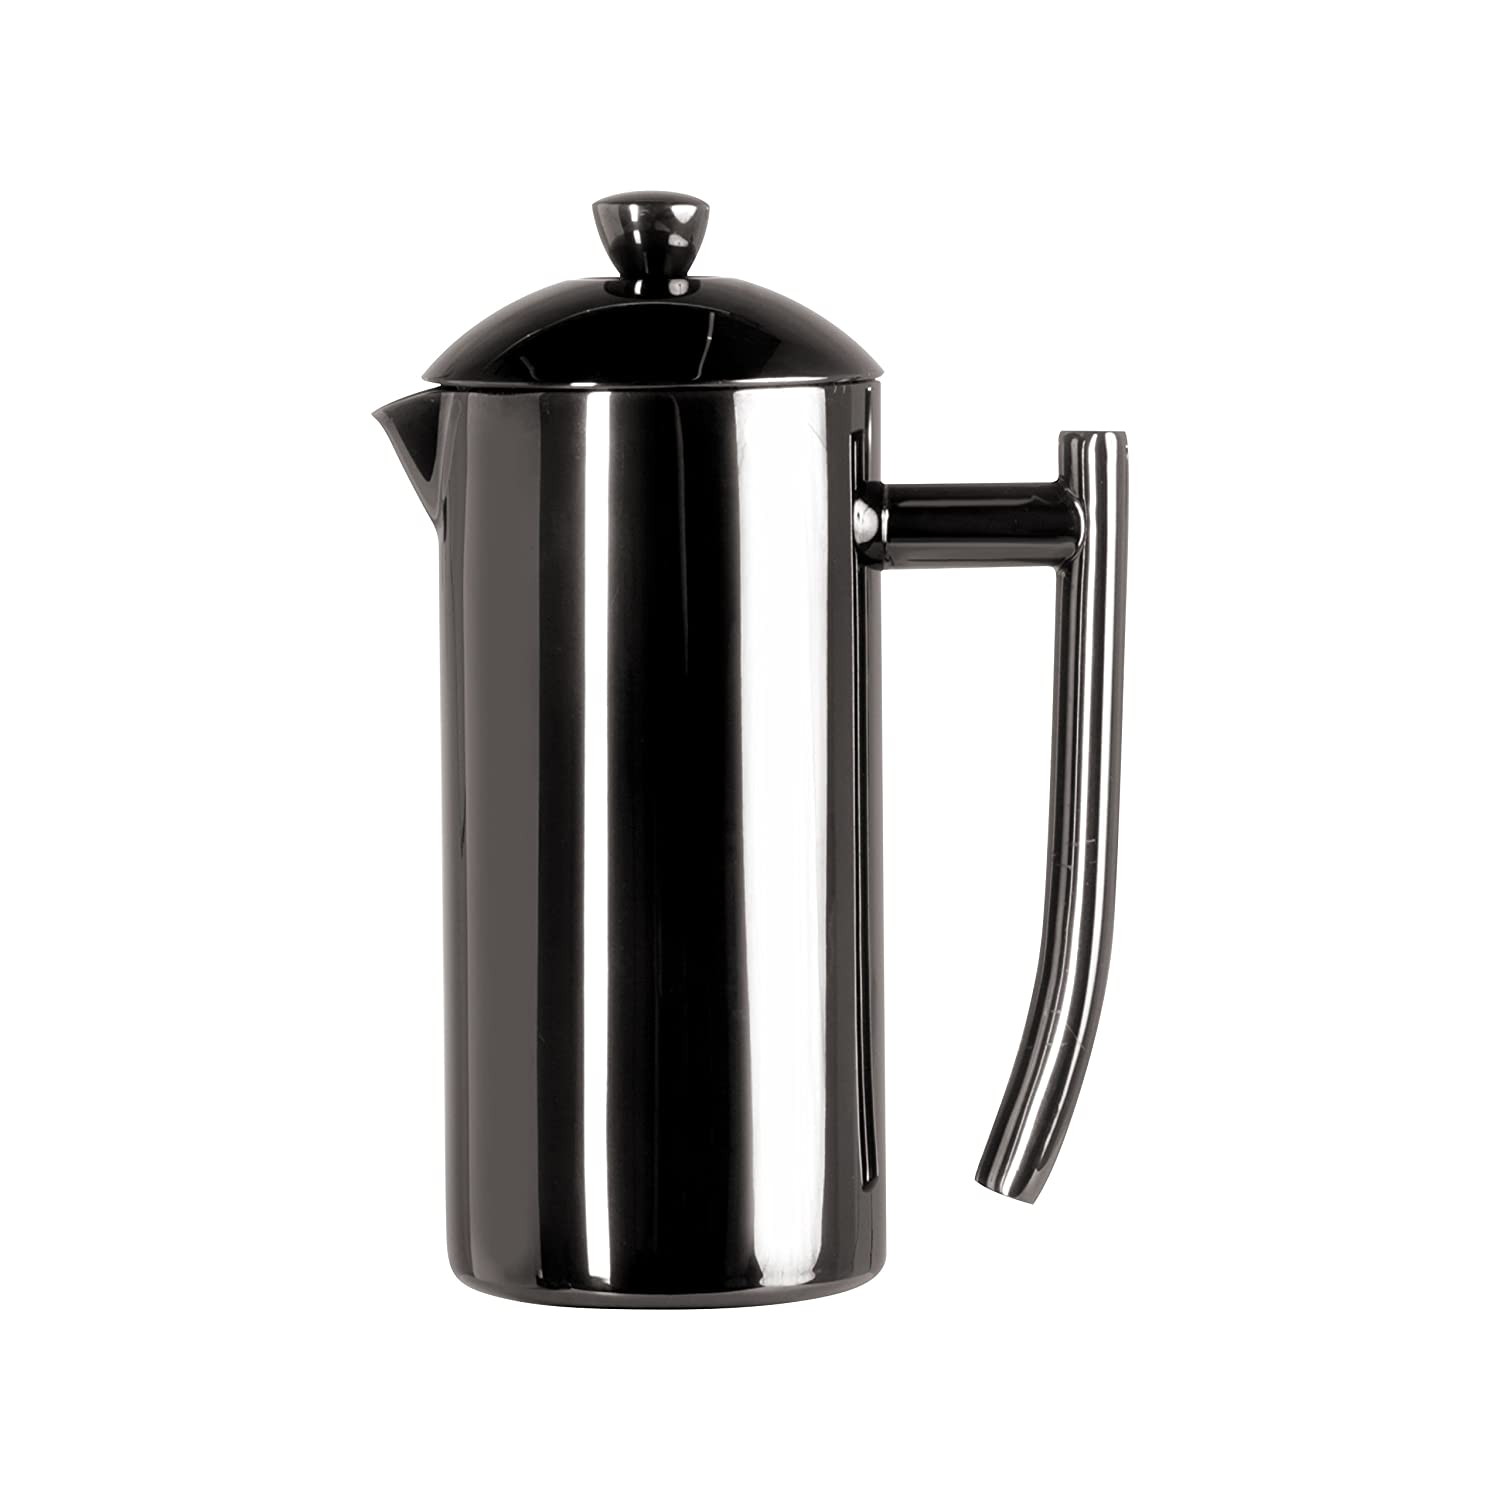 Frieling USA Double Wall Stainless Steel French Press Coffee Maker with Patented Dual Screen in Frustration Free Packaging, Black Metallic, 23-Ounce 253